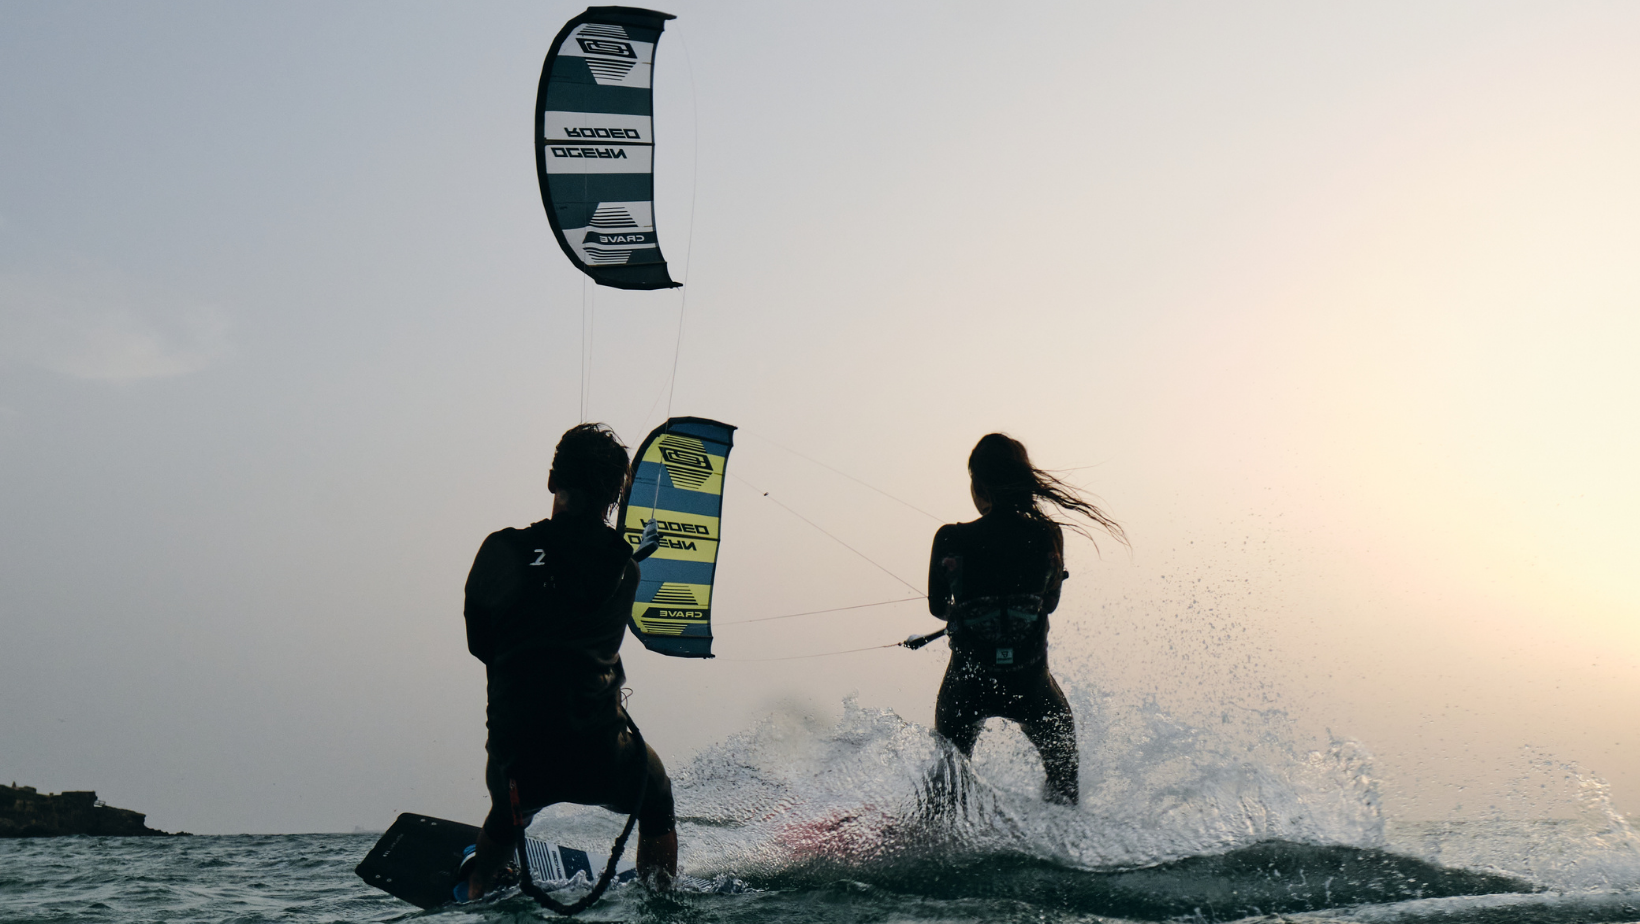 WIN a Crave HL-Series kite!